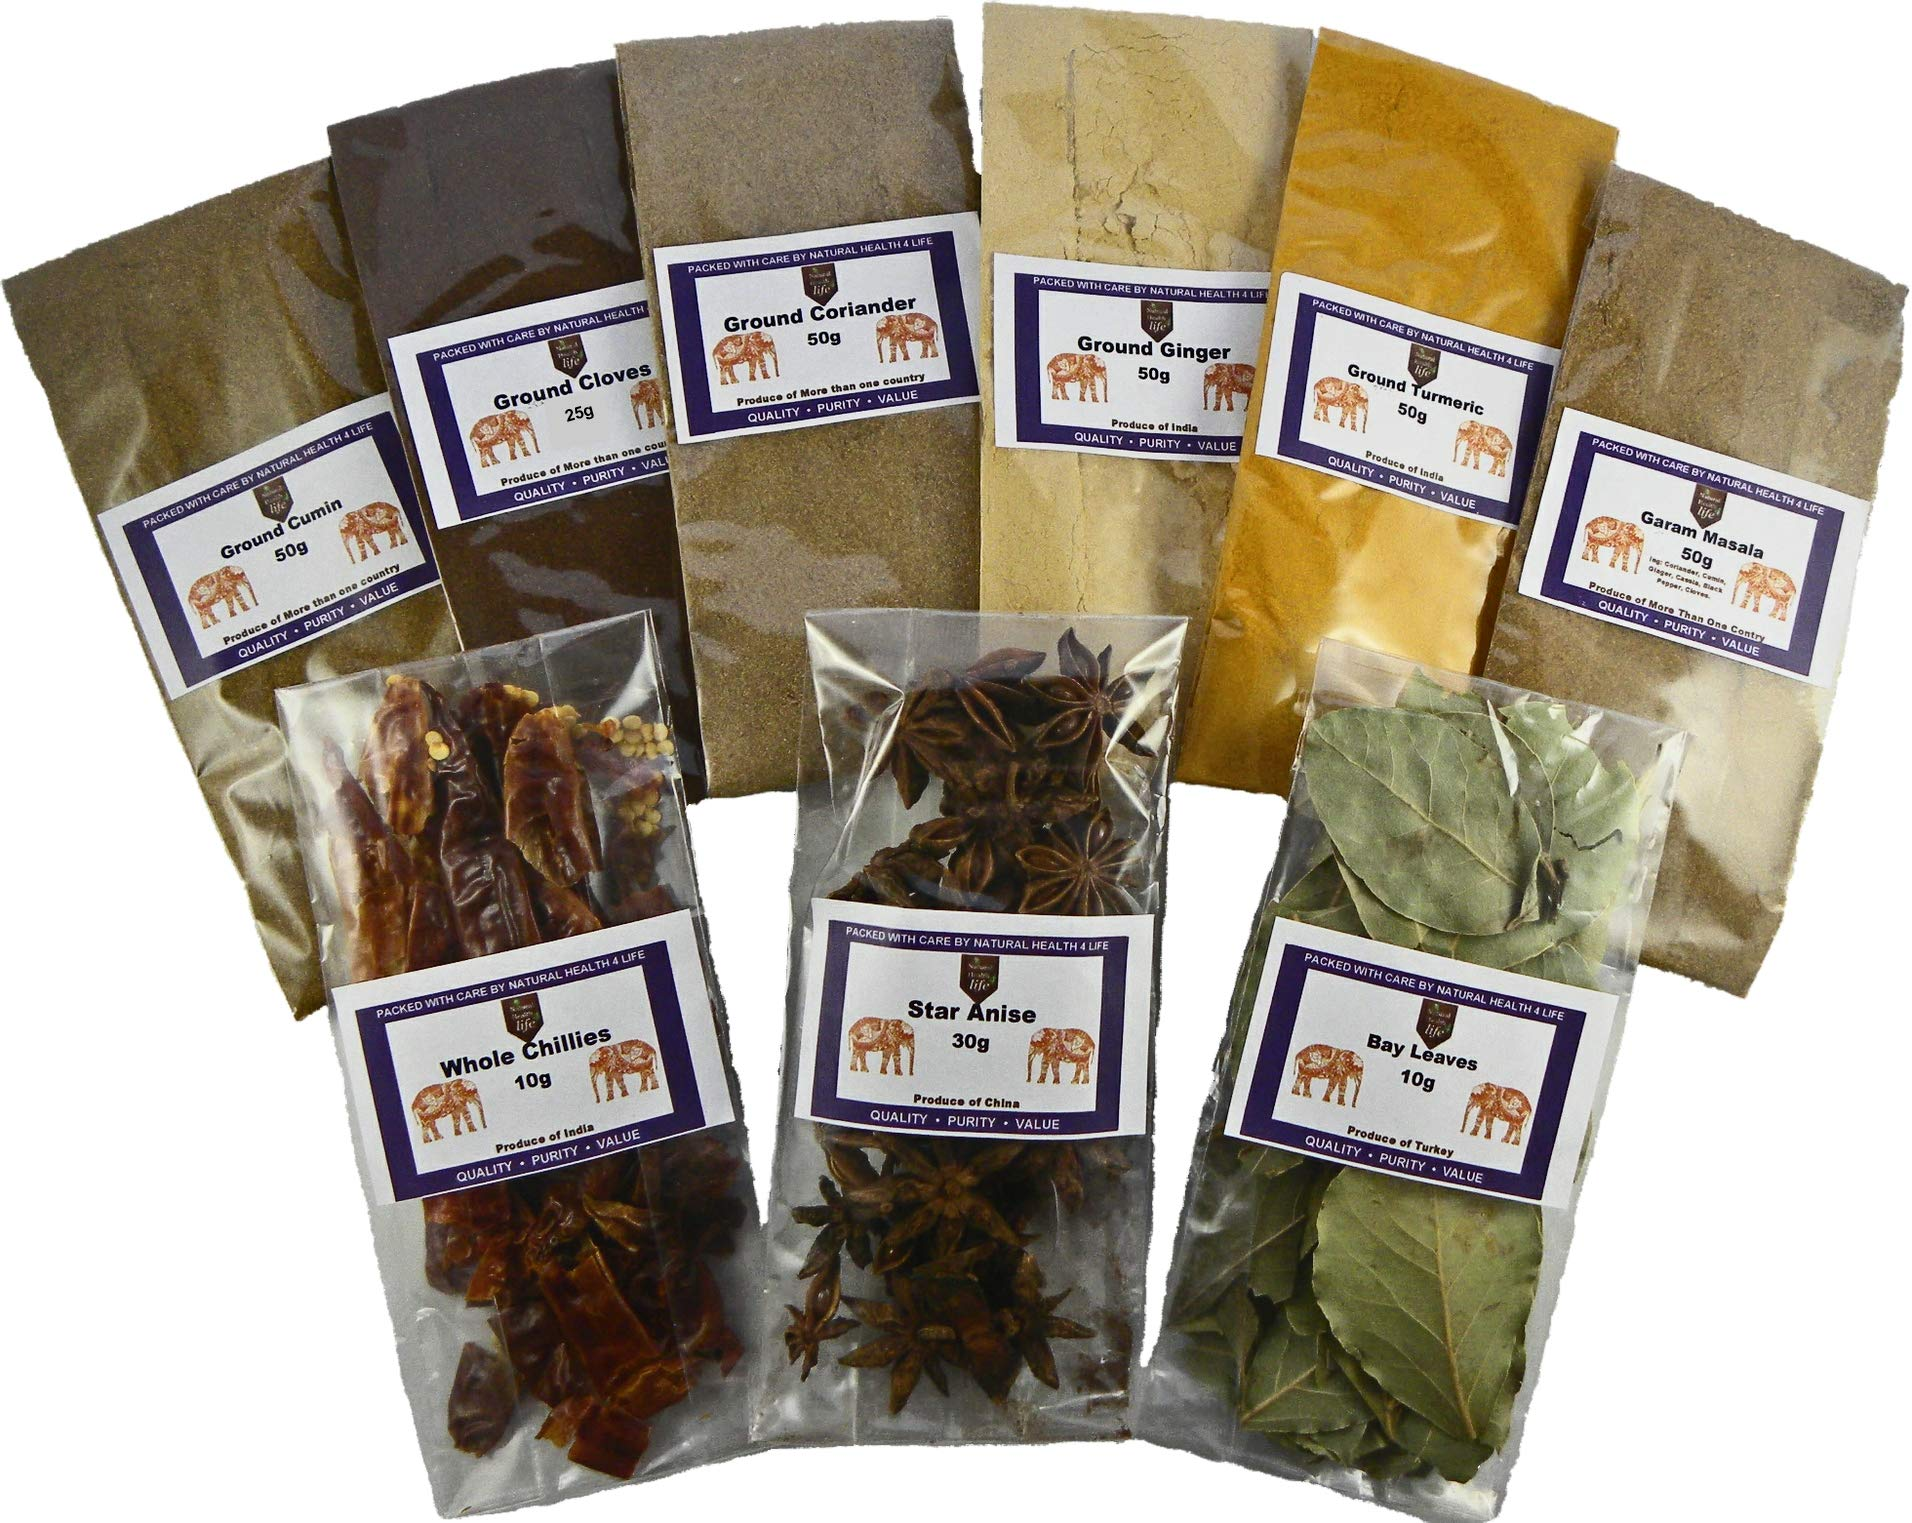 Authentic Indian Spice Gift Set Curry Spice KIT - Makes UP to 24 CURRIES - Quality Spices with Free Post 2